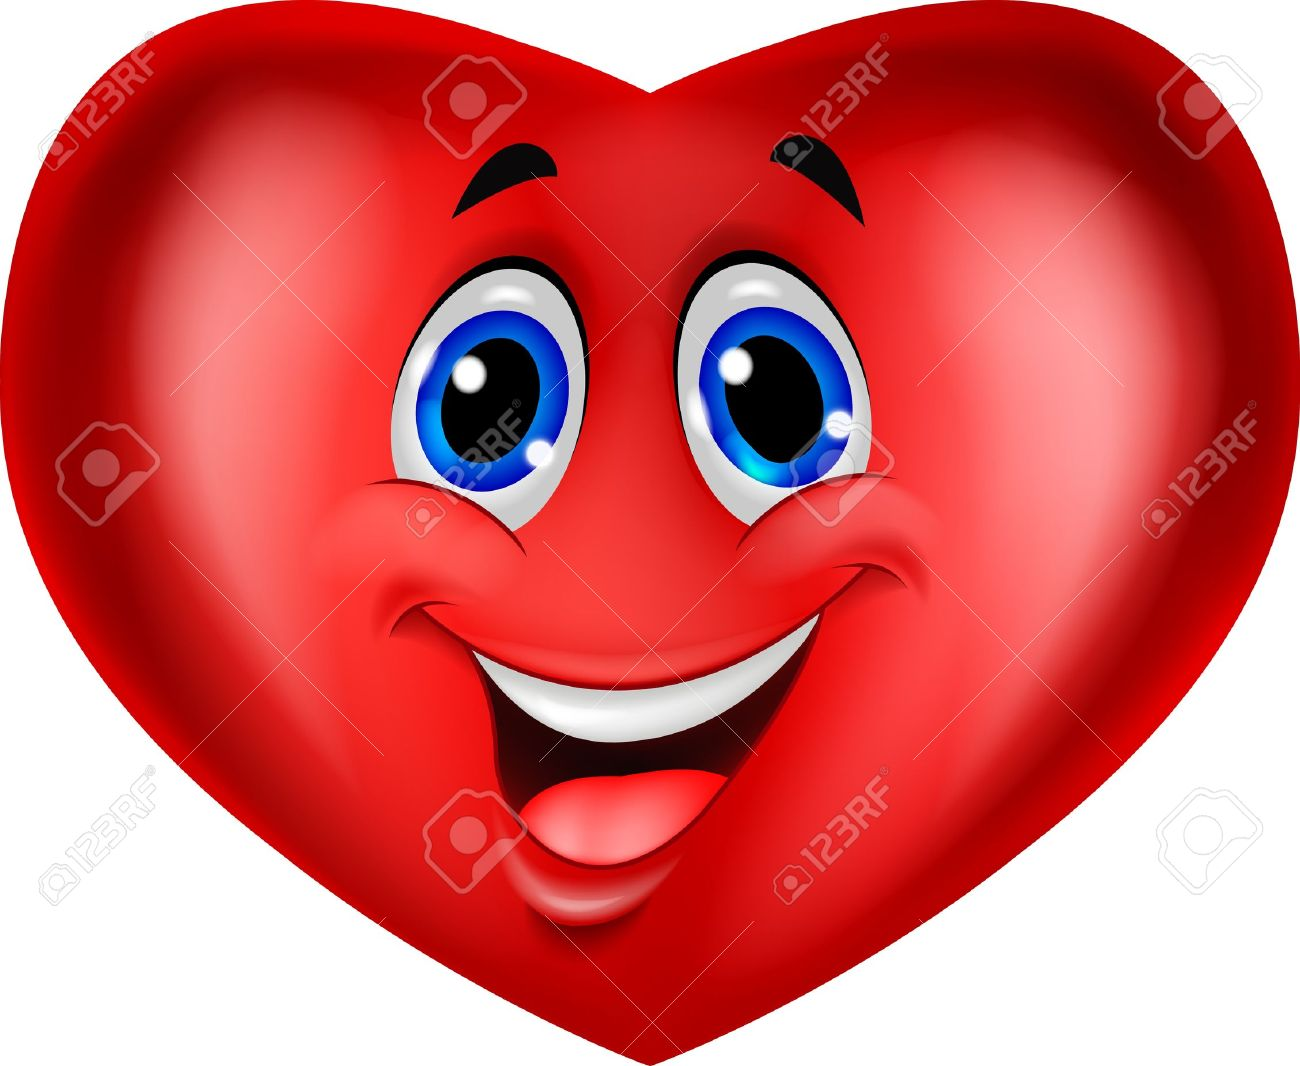 Smiley Heart Clipart.